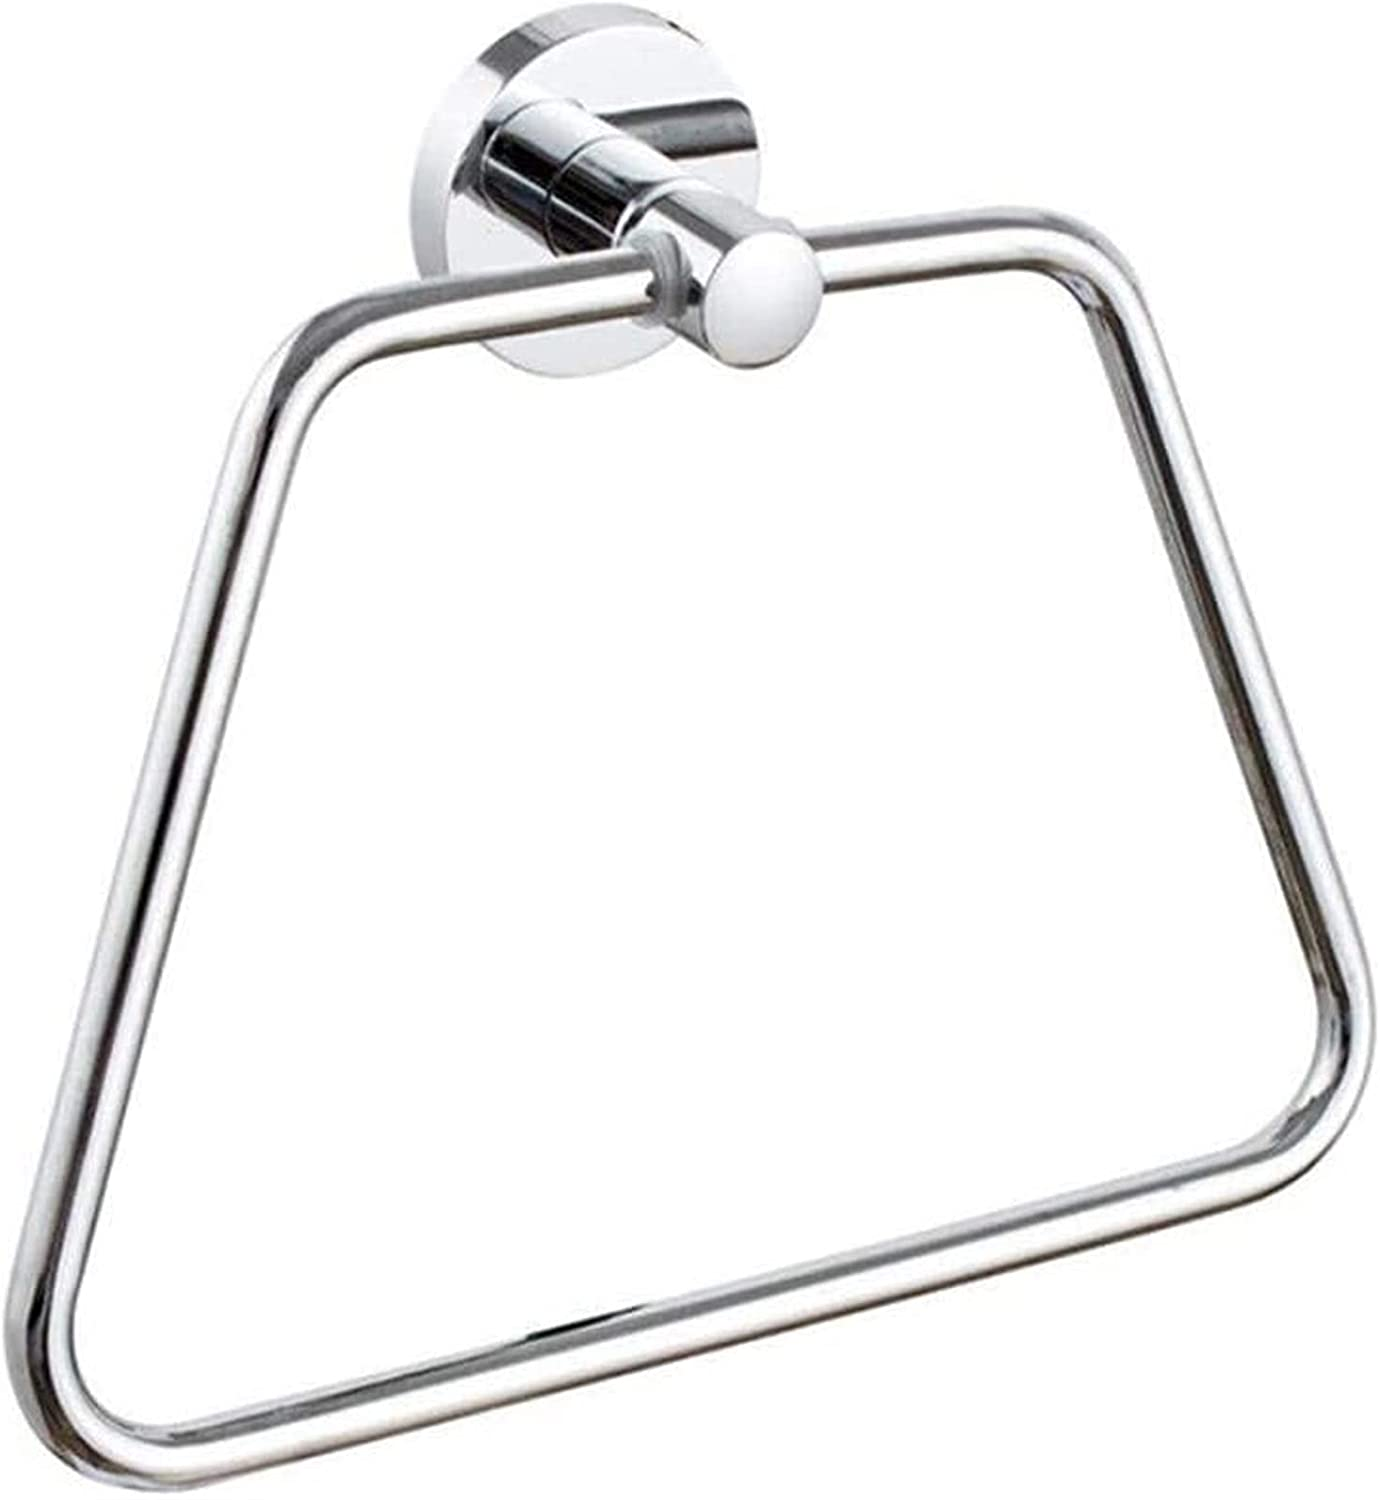 Towel rack Wall Mounted Creativity Safety and trust Trapezoid Ring Excellence Simple